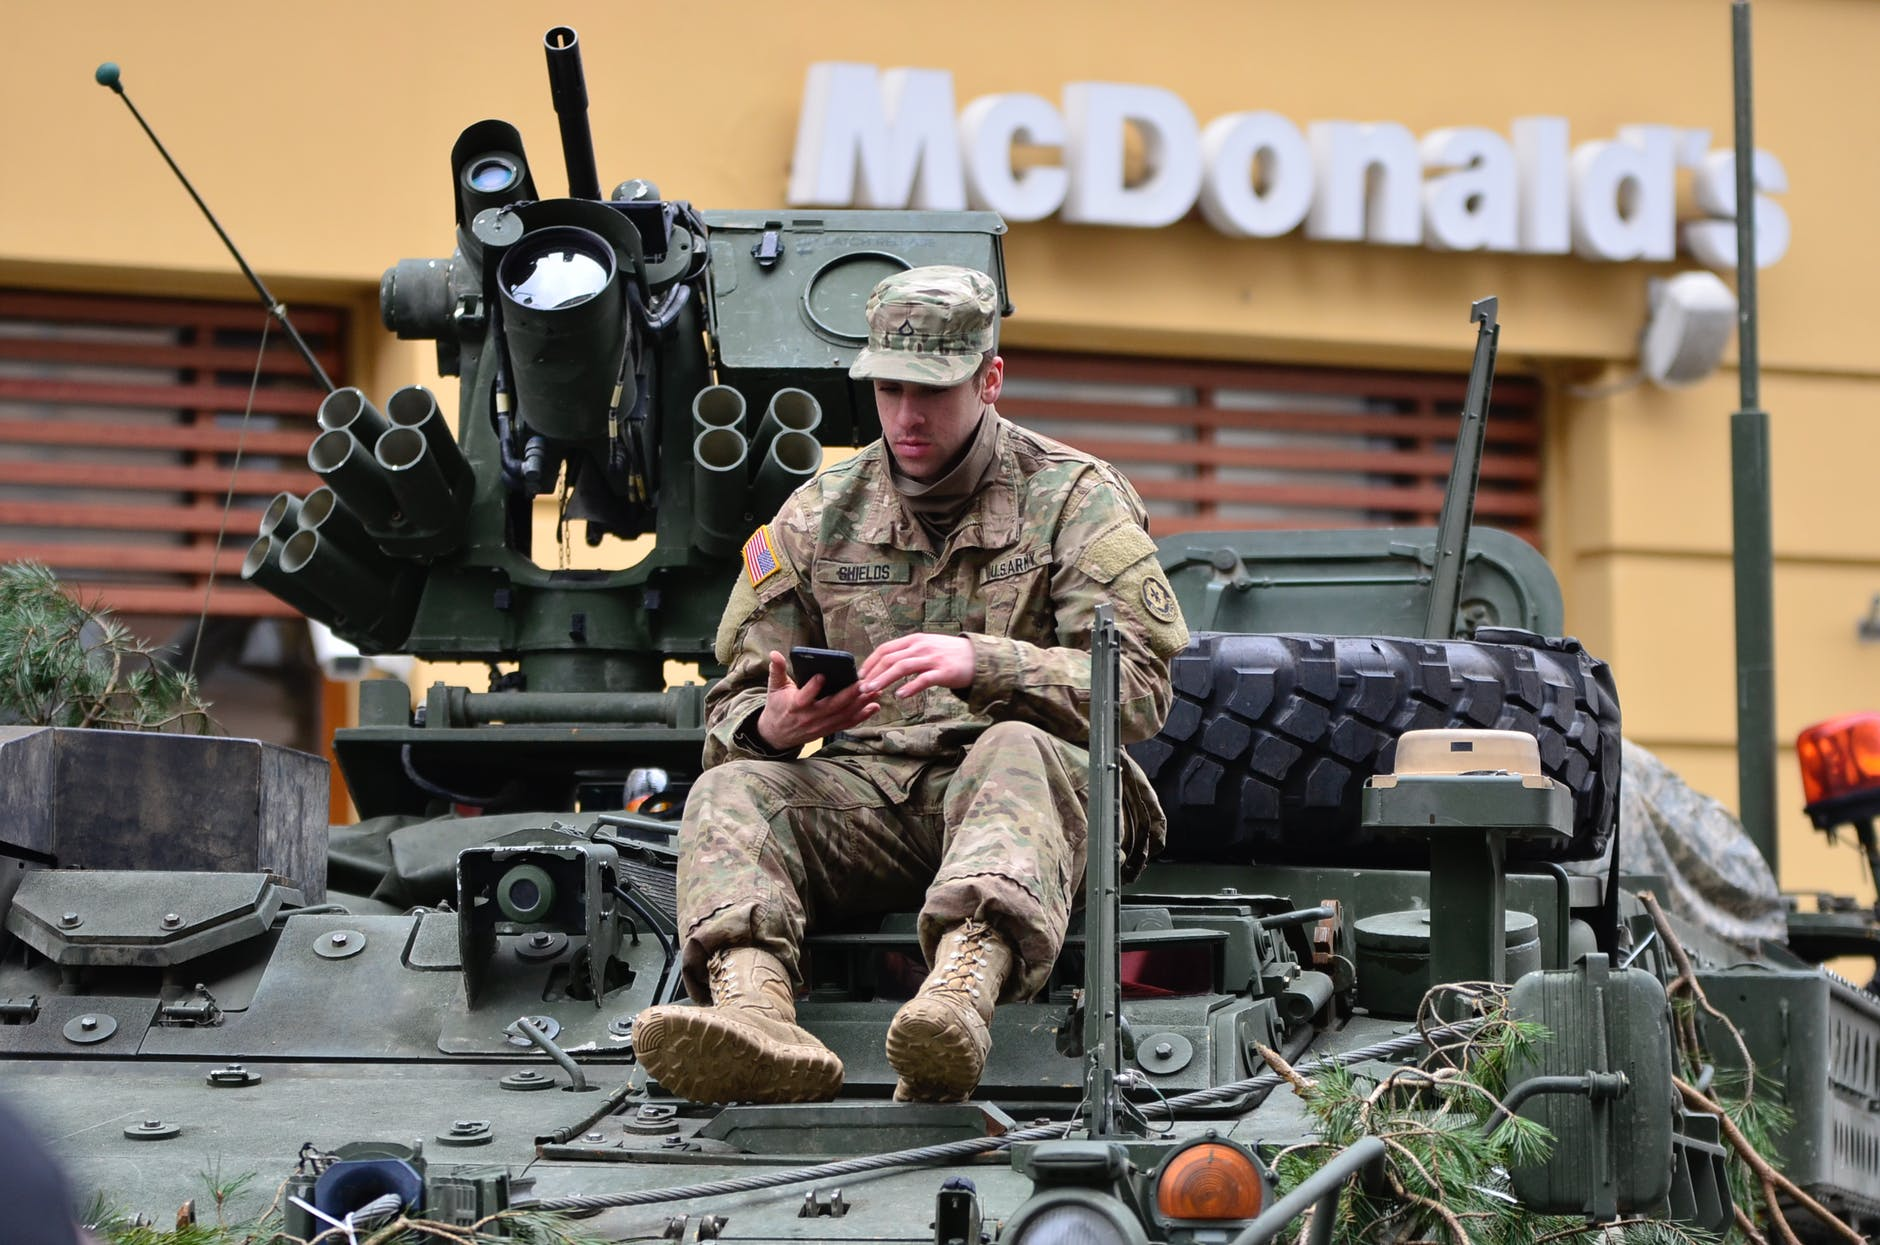 military man sitting in the tank in front of McDonald's